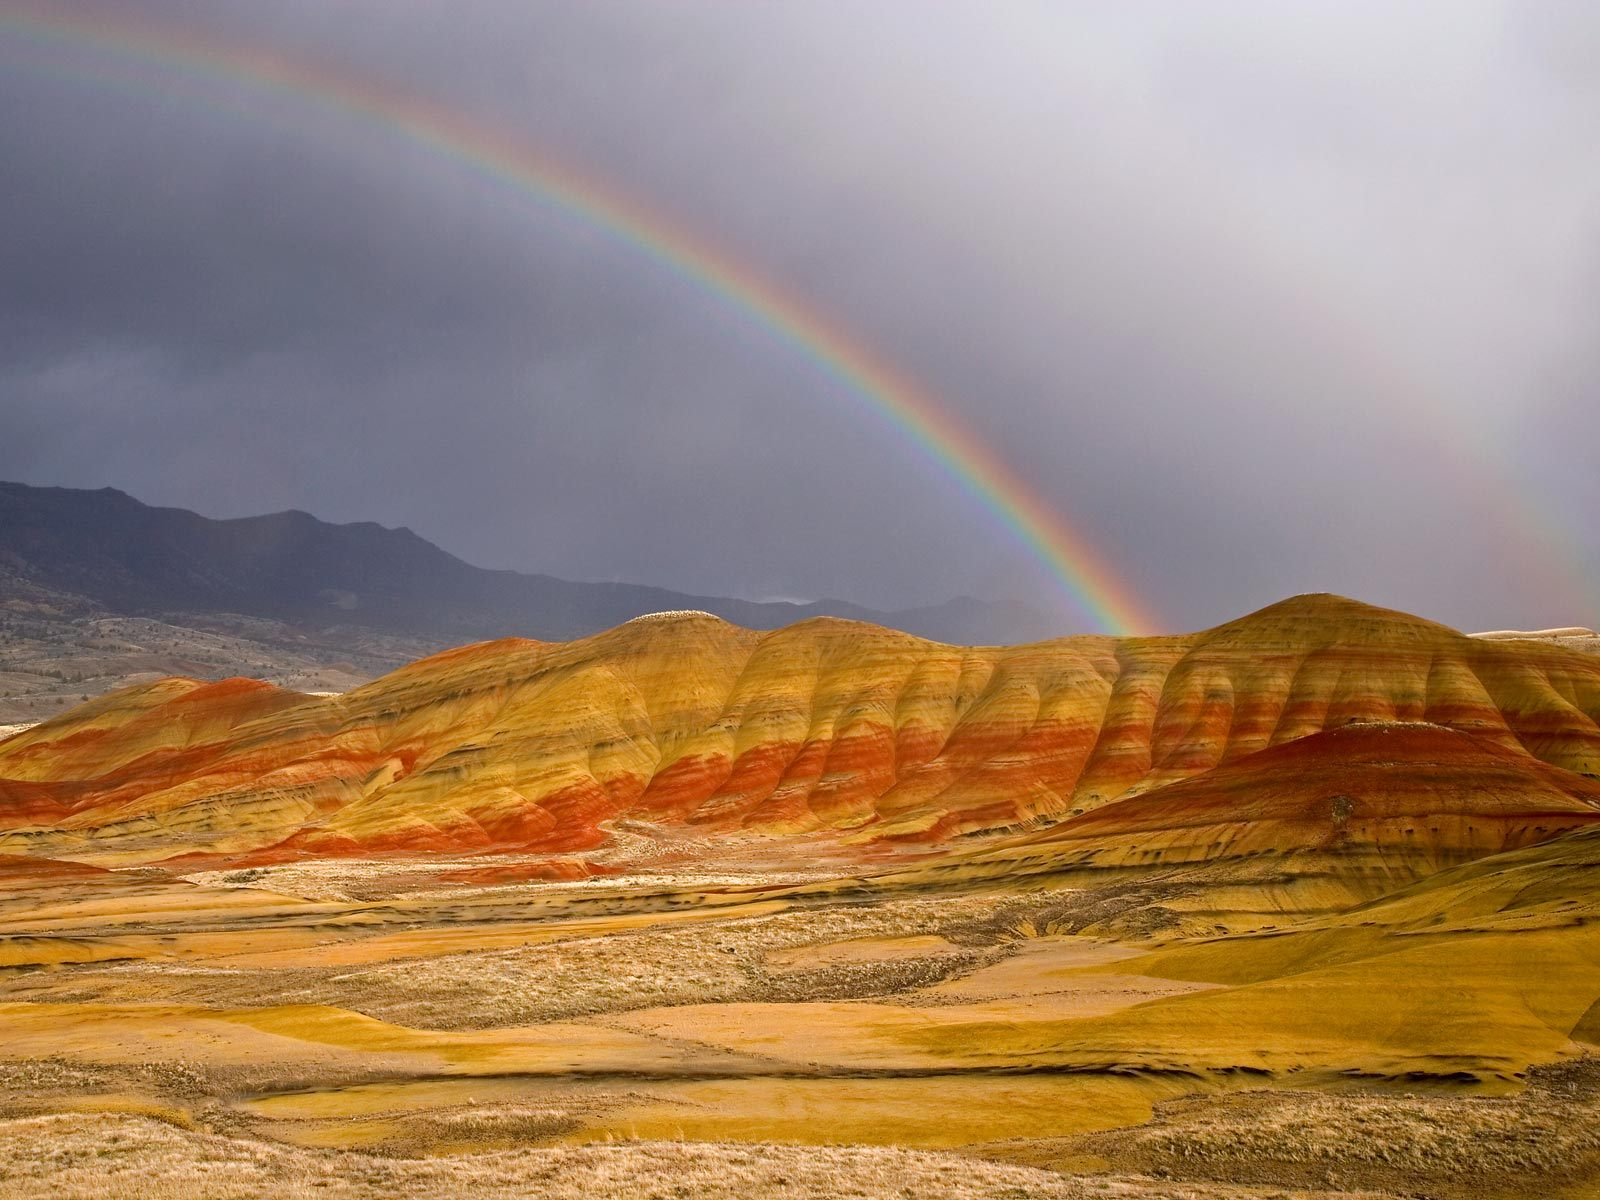 rainbow-over-the-painted-hills-oregon